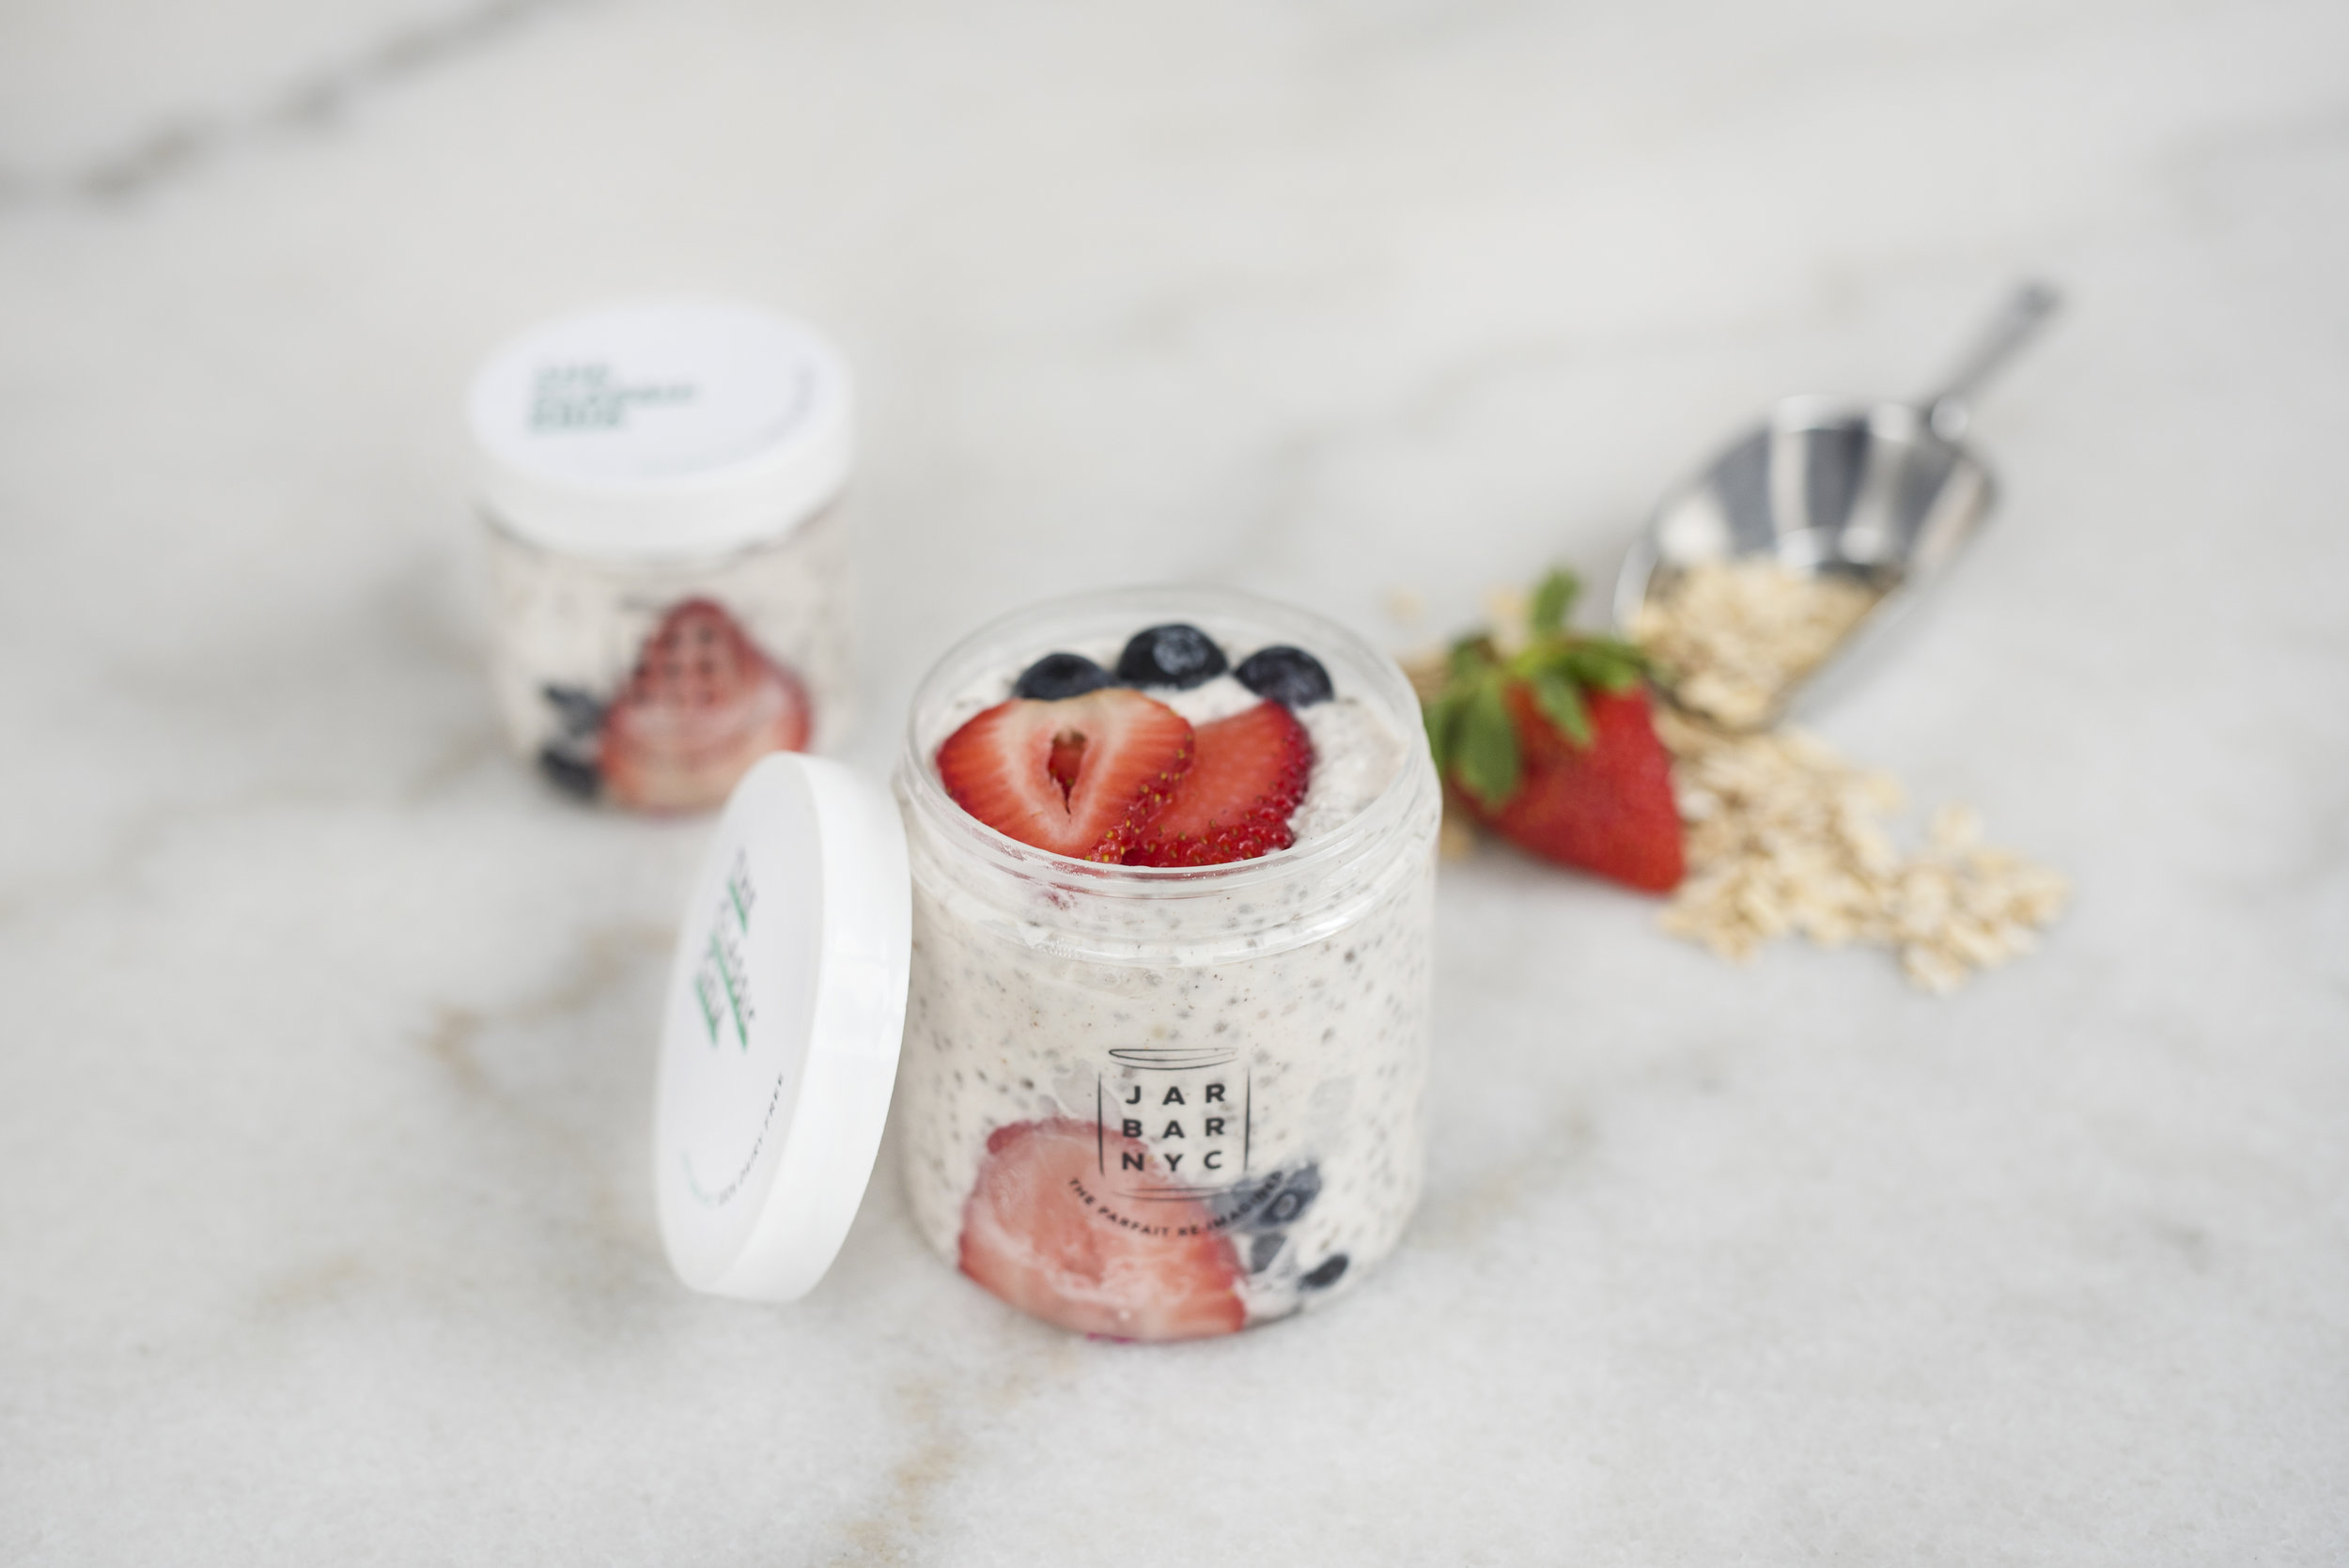 THE CLASSIC CHIA : classic chia pudding layered with fresh berries, a play off the traditional yogurt and berries breakfast parfait.  Ingredients: unsweetened coconut milk, chia seeds, organic pure vanilla extract, organic amber agave, fine sea salt. PLEASE NOTE FRUIT IS NOT INCLUDED WITH THIS JAR, IT IS JUST THE PLAIN CHIA PUDDING.